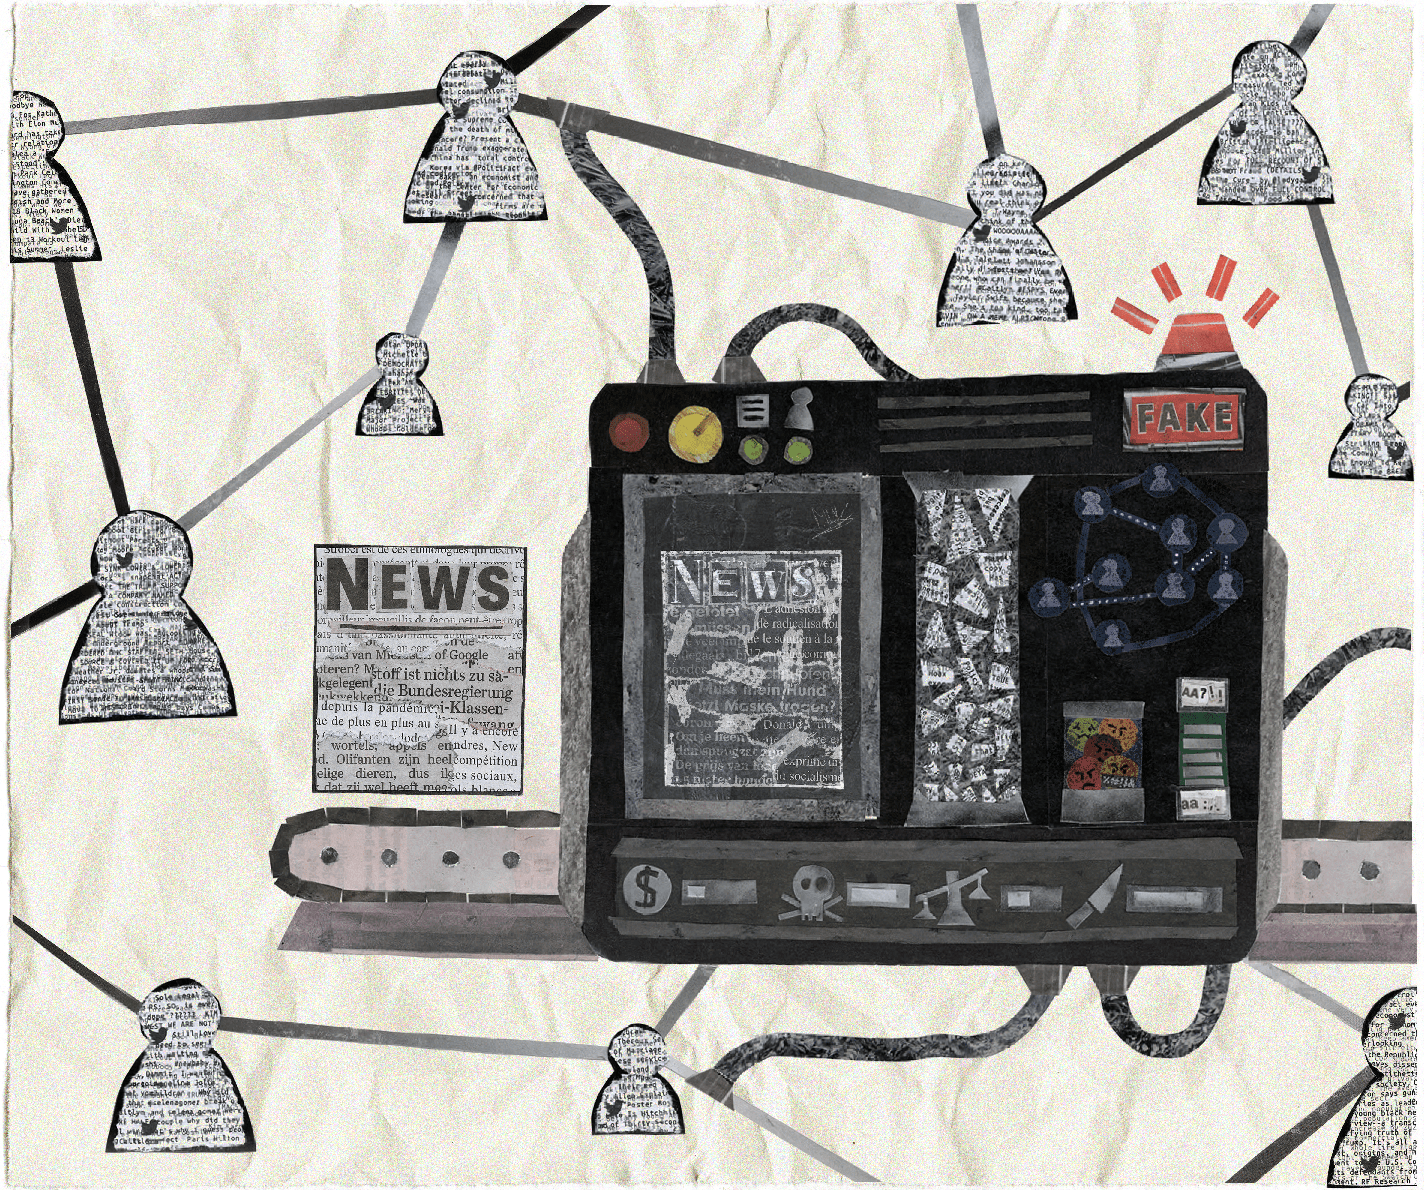 Imagine we could detect fake news – what then?